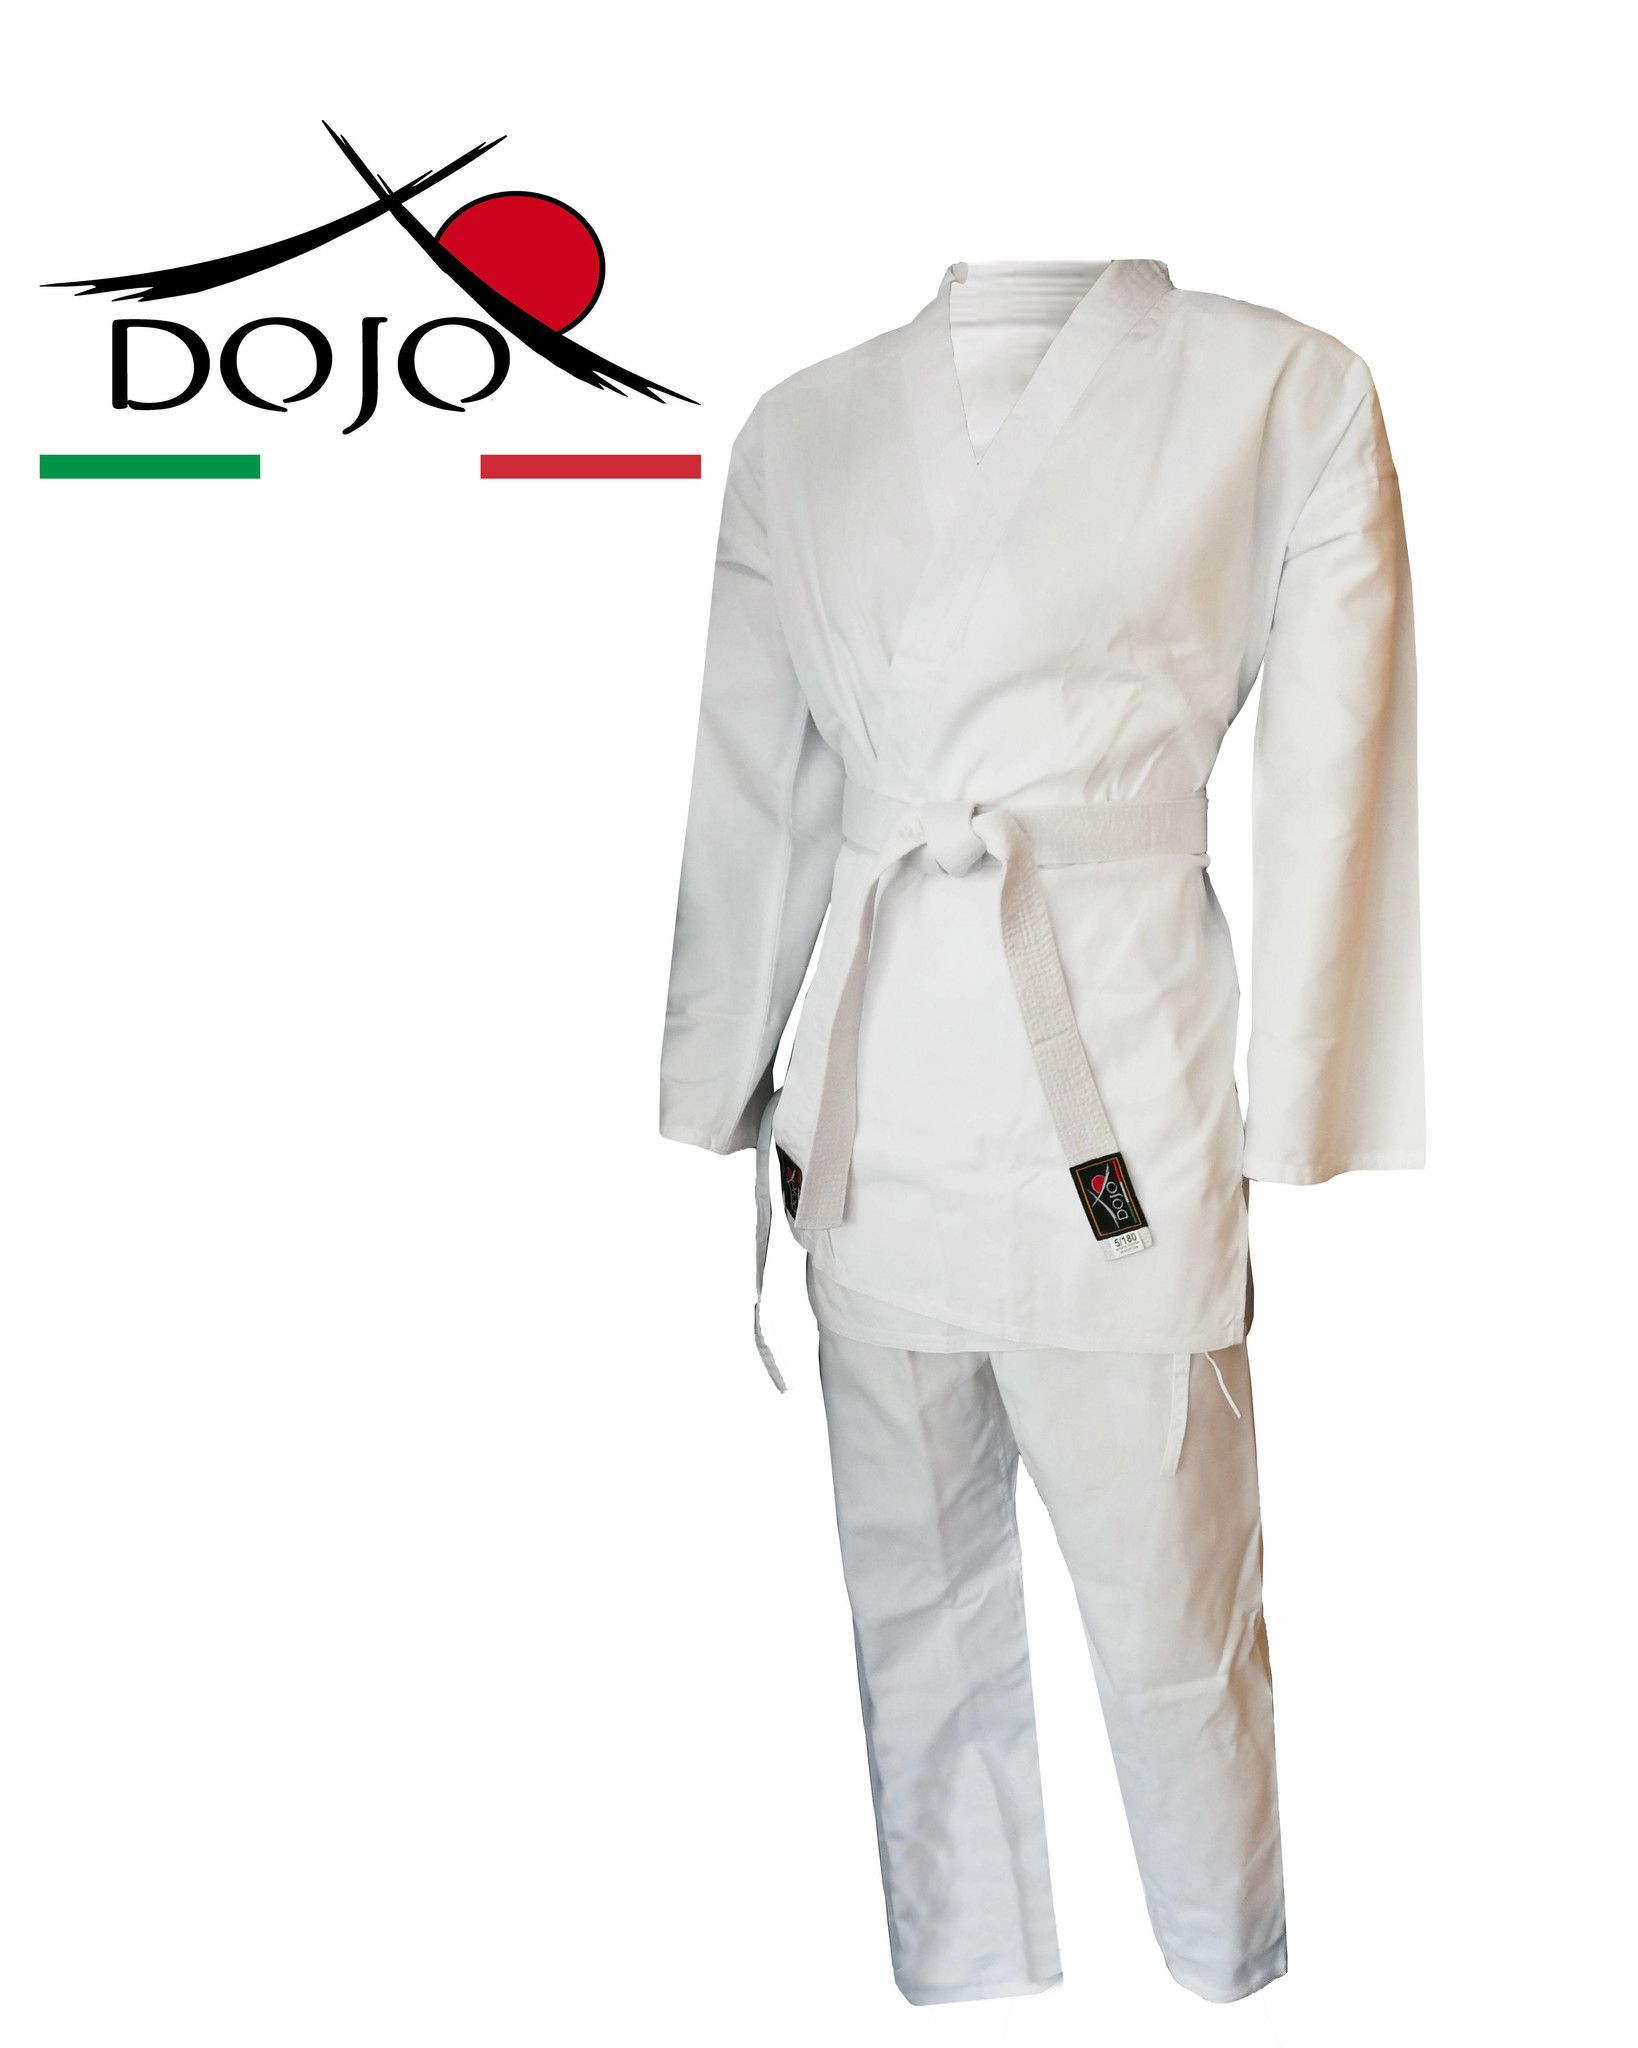 Dojo - Karategi Uniforme per Karate Training per allenamento bambini e adulti